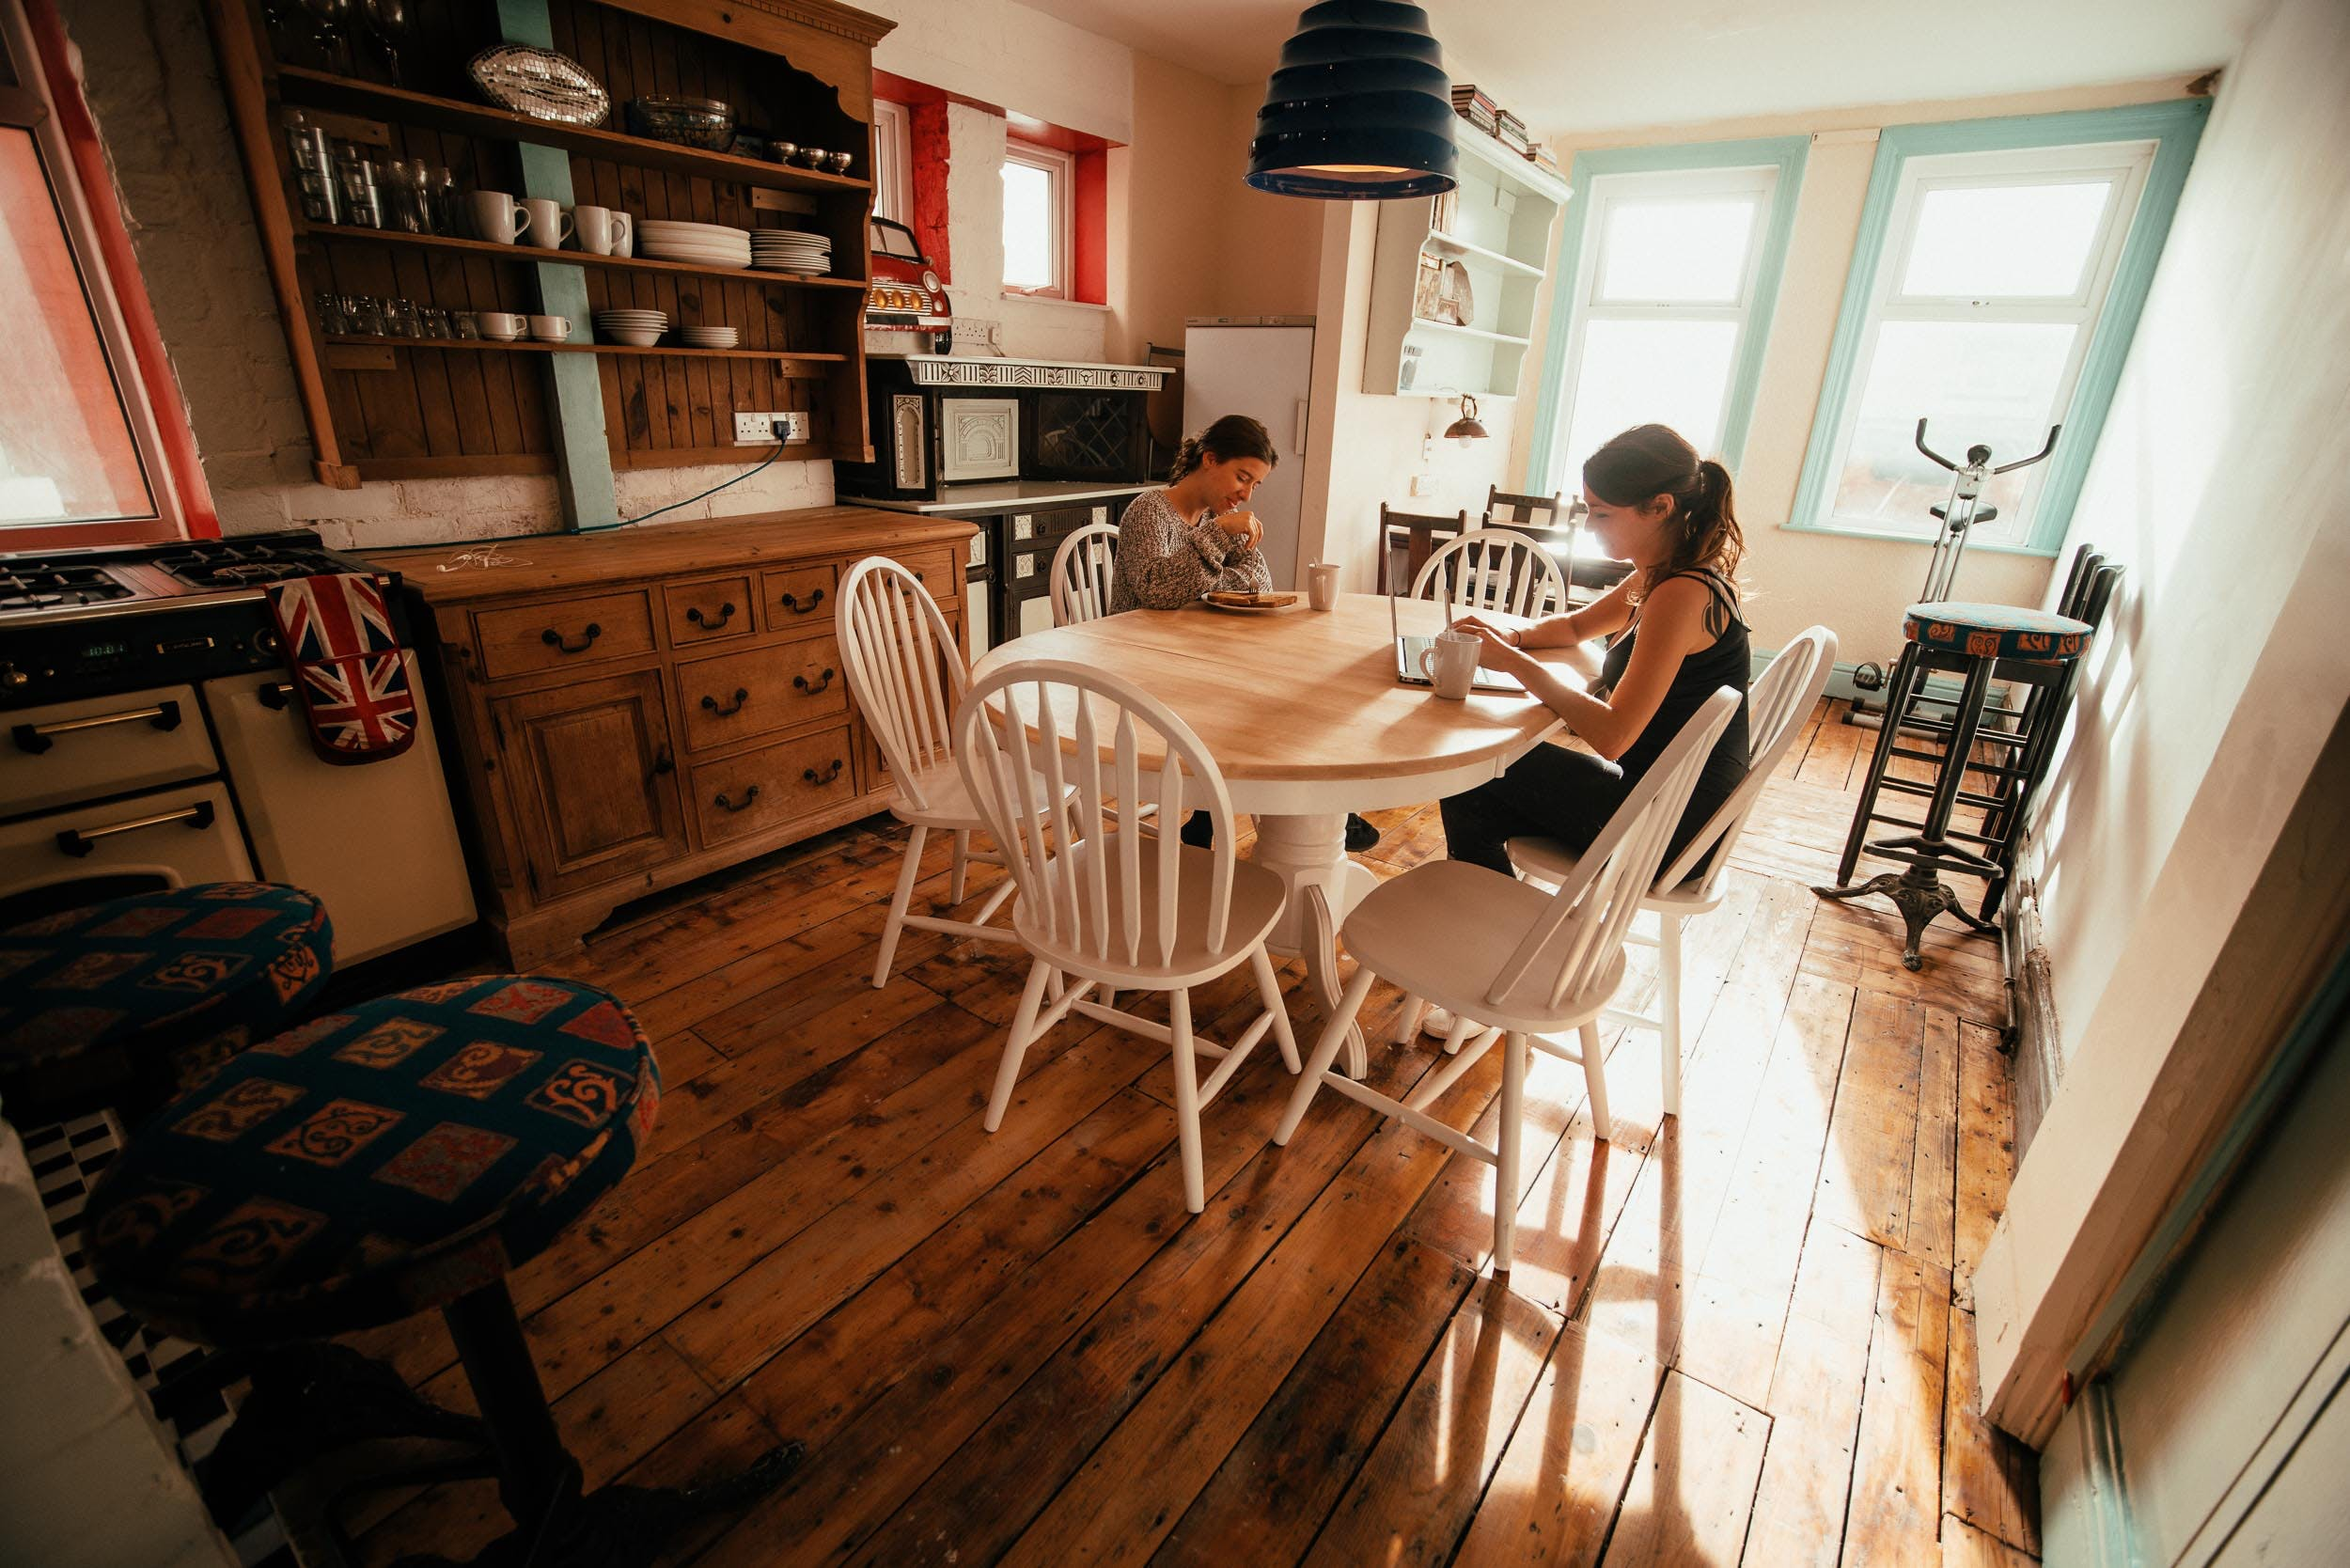 19 Residents | Blackpool | Victorian Renovated House w/ Coworking + BBQ